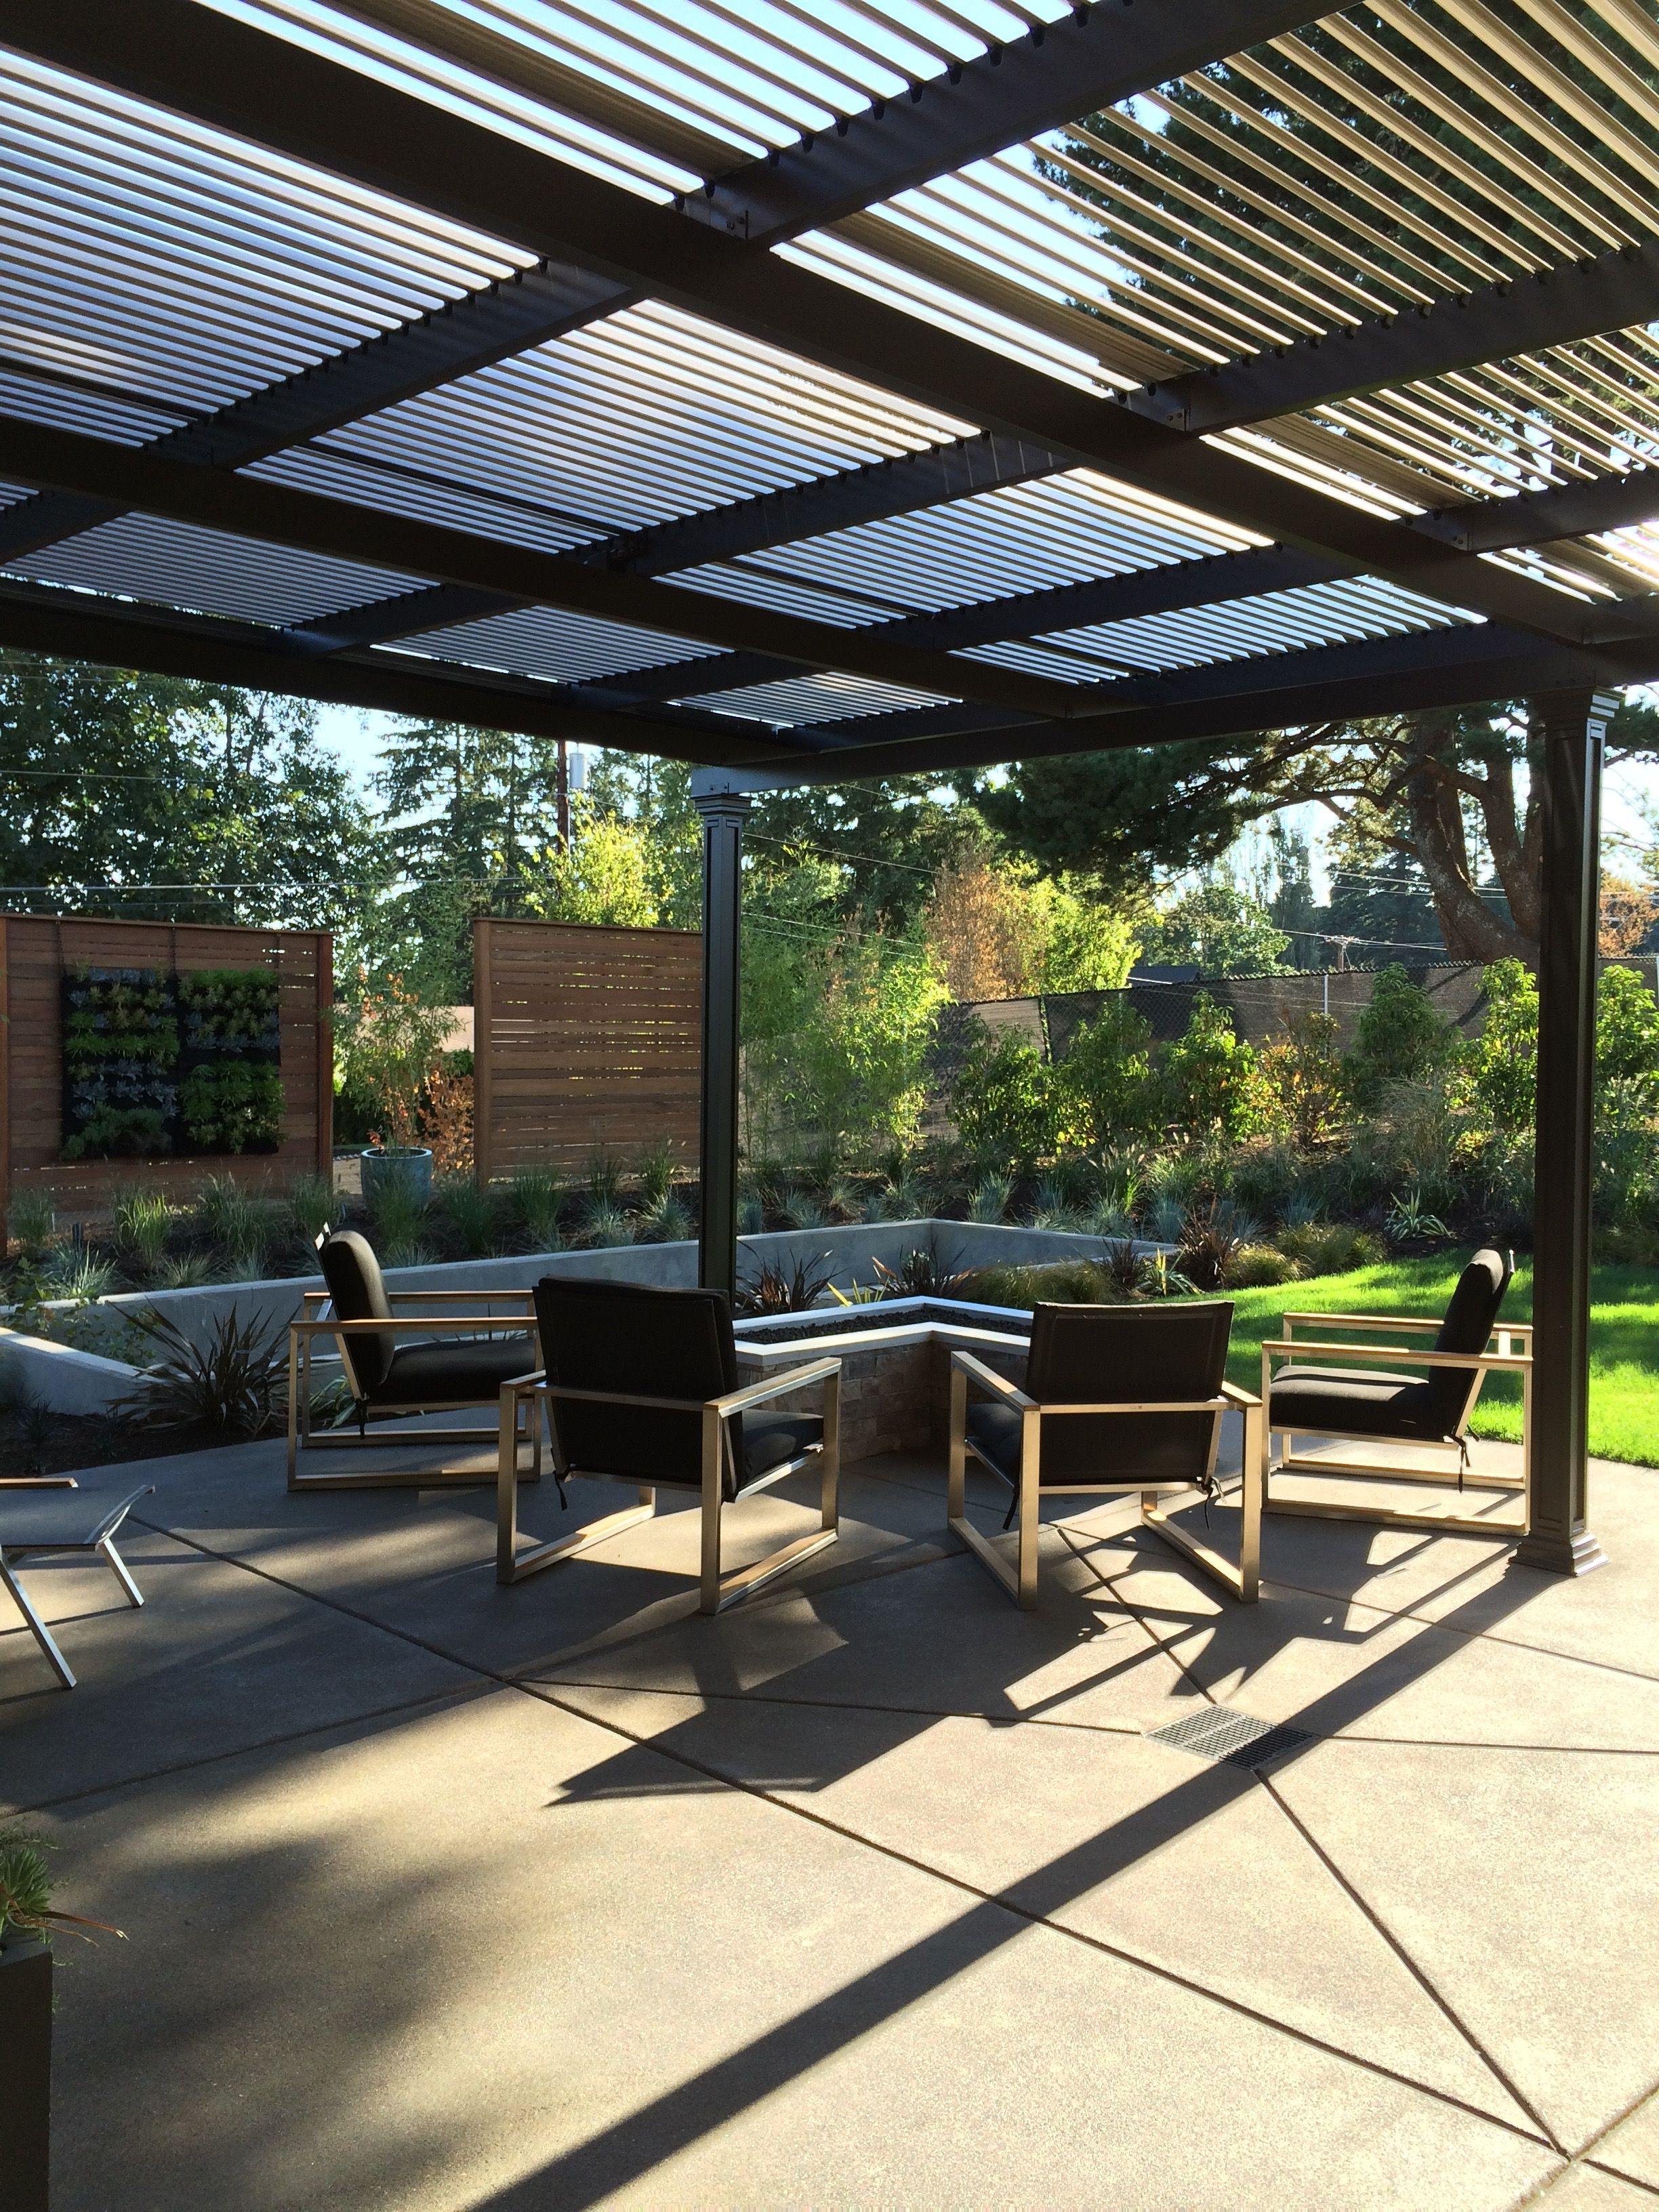 Outdoor Living room from NW Street of Dreams | Outdoor ... on Outdoor Living Spaces Nw id=51113